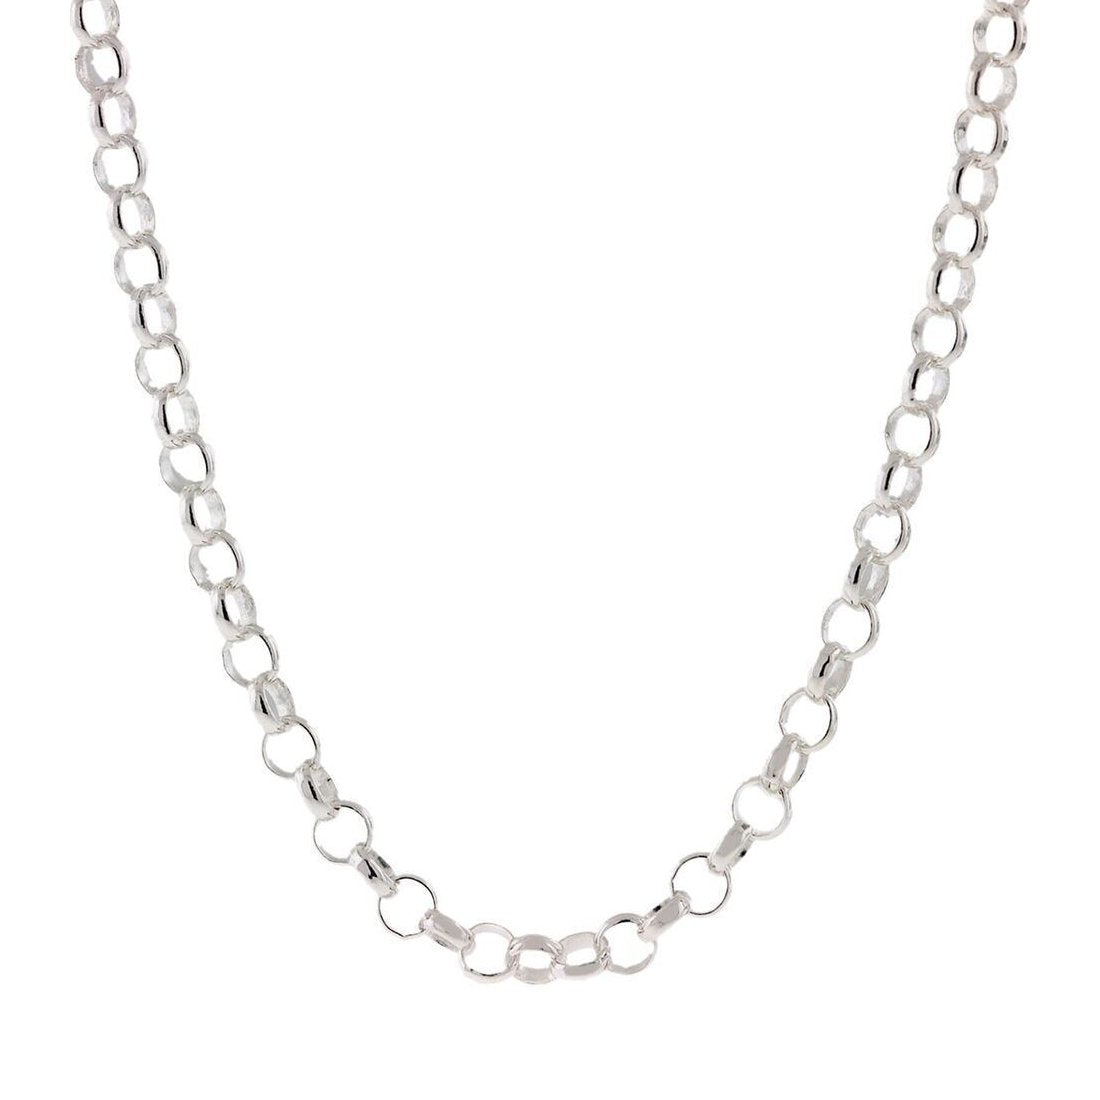 "1.4MM Rolo Chain .925 Solid Sterling Silver Available In 16""- 20"" Inches"